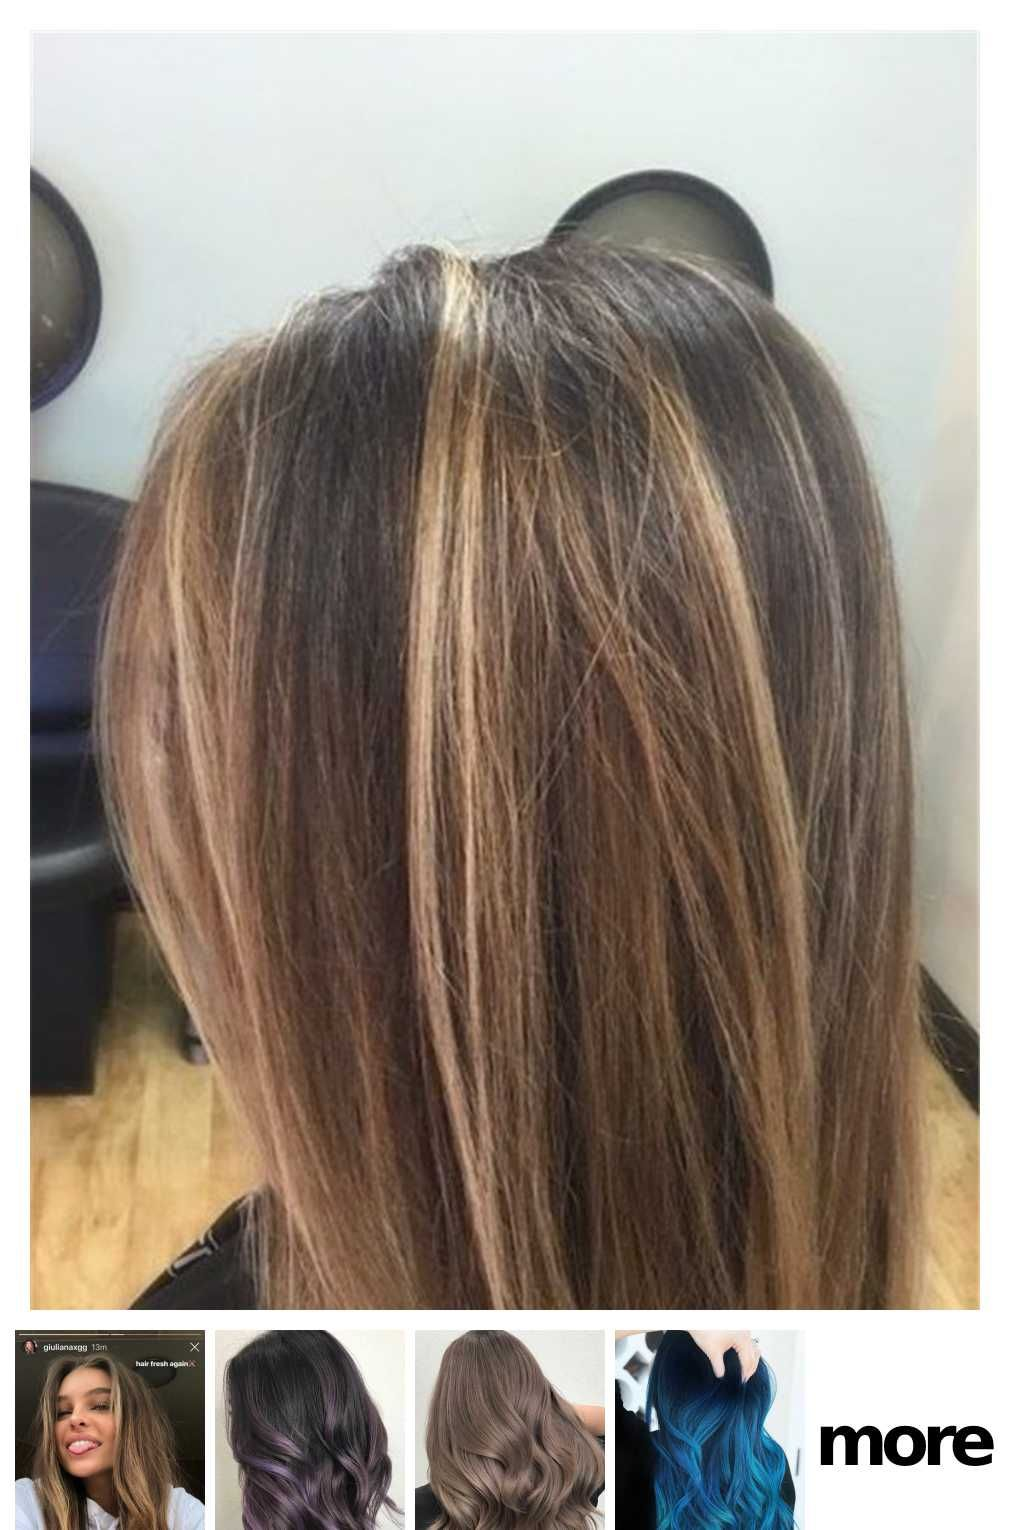 Dark Brunette Hairstyles For Spring 2018 Brown Balayage Fashionsfield Brown Hair Balayage Dark Brown Hair Balayage Hair Styles